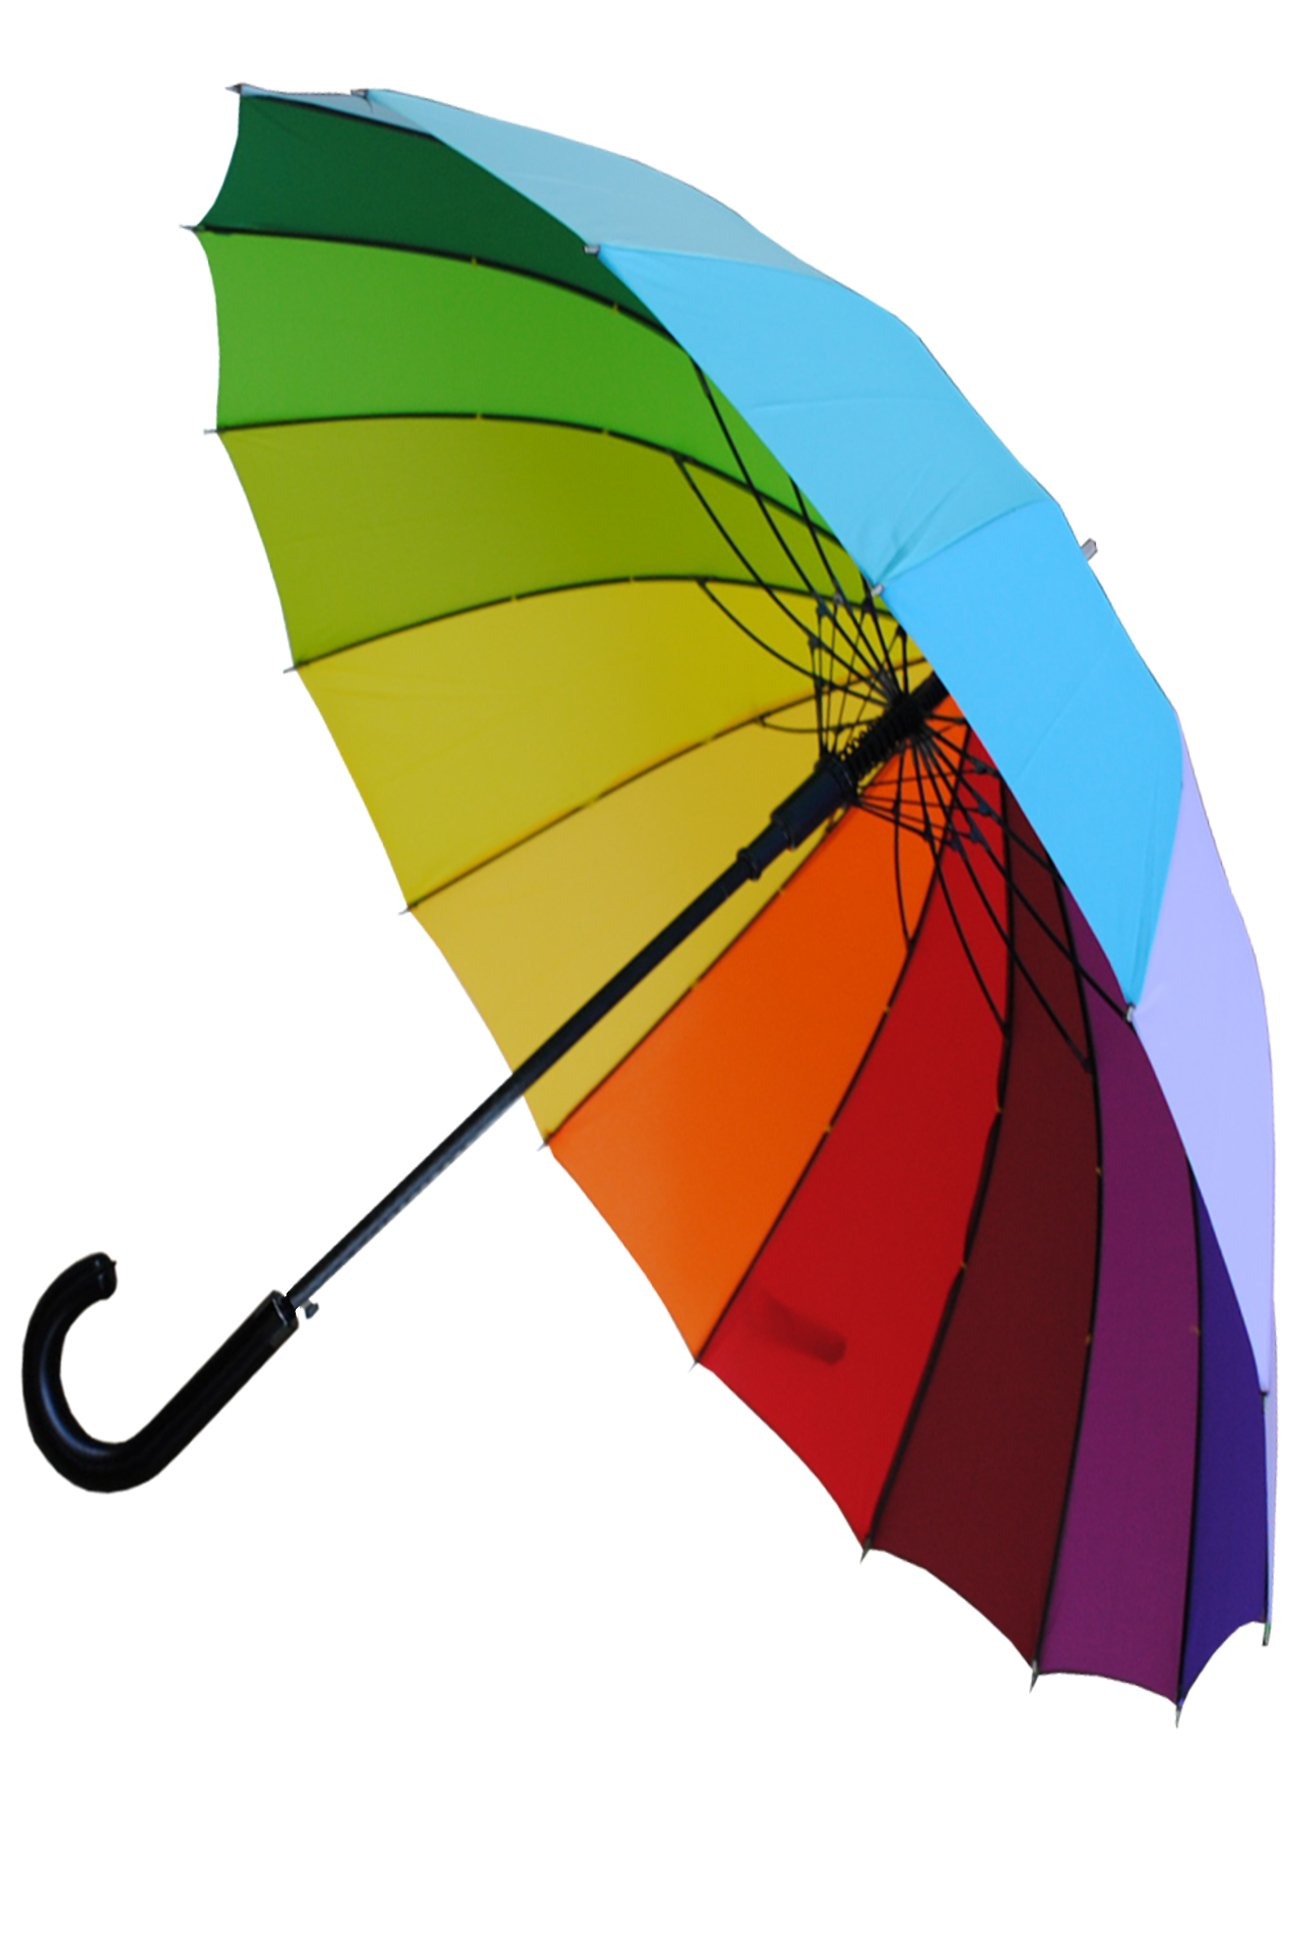 COLLAR AND CUFFS LONDON - Windproof 60MPH - 16 Ribs For SUPER-STRENGTH - EXTRA STRONG - Straight Auto Umbrella Rainbow Canopy by COLLAR AND CUFFS LONDON